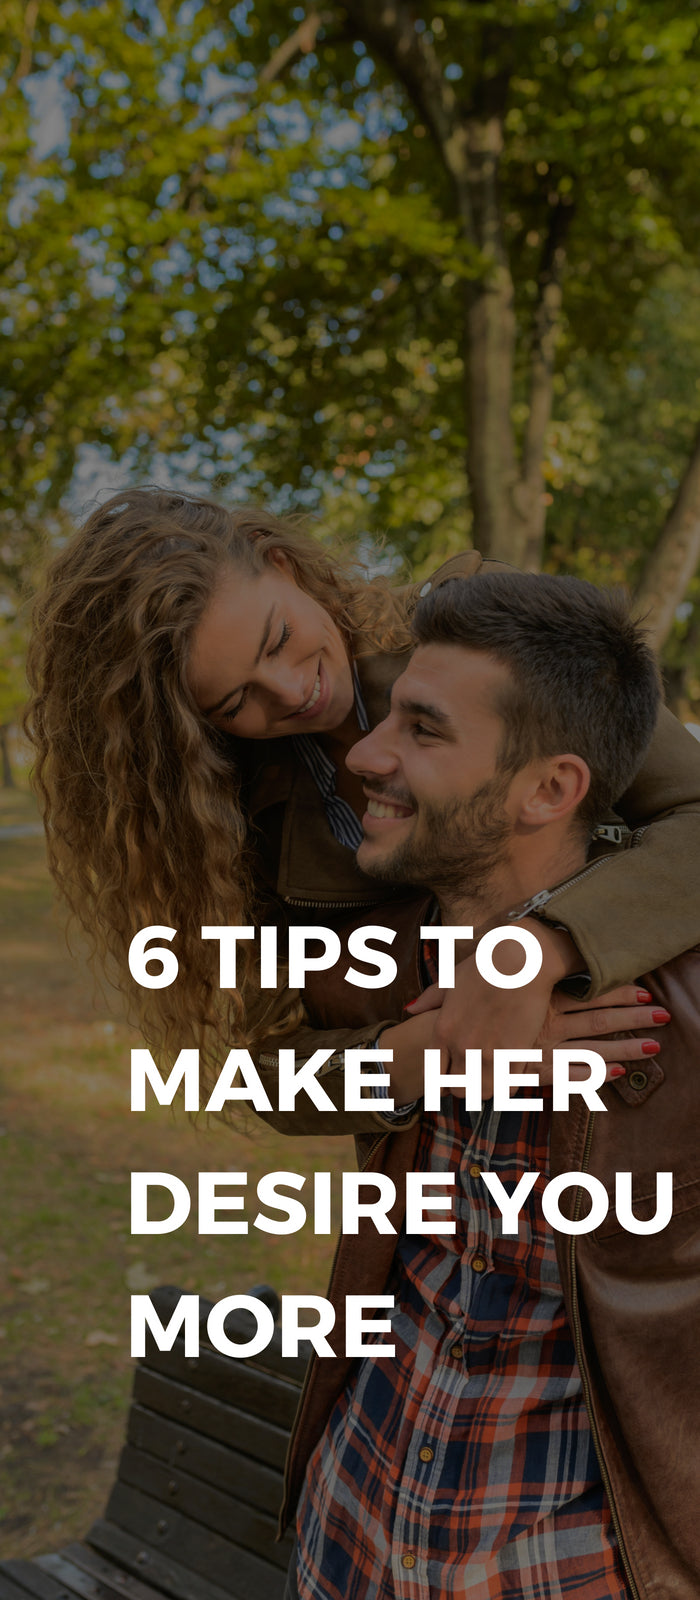 6 Tips To Make Her Desire You More